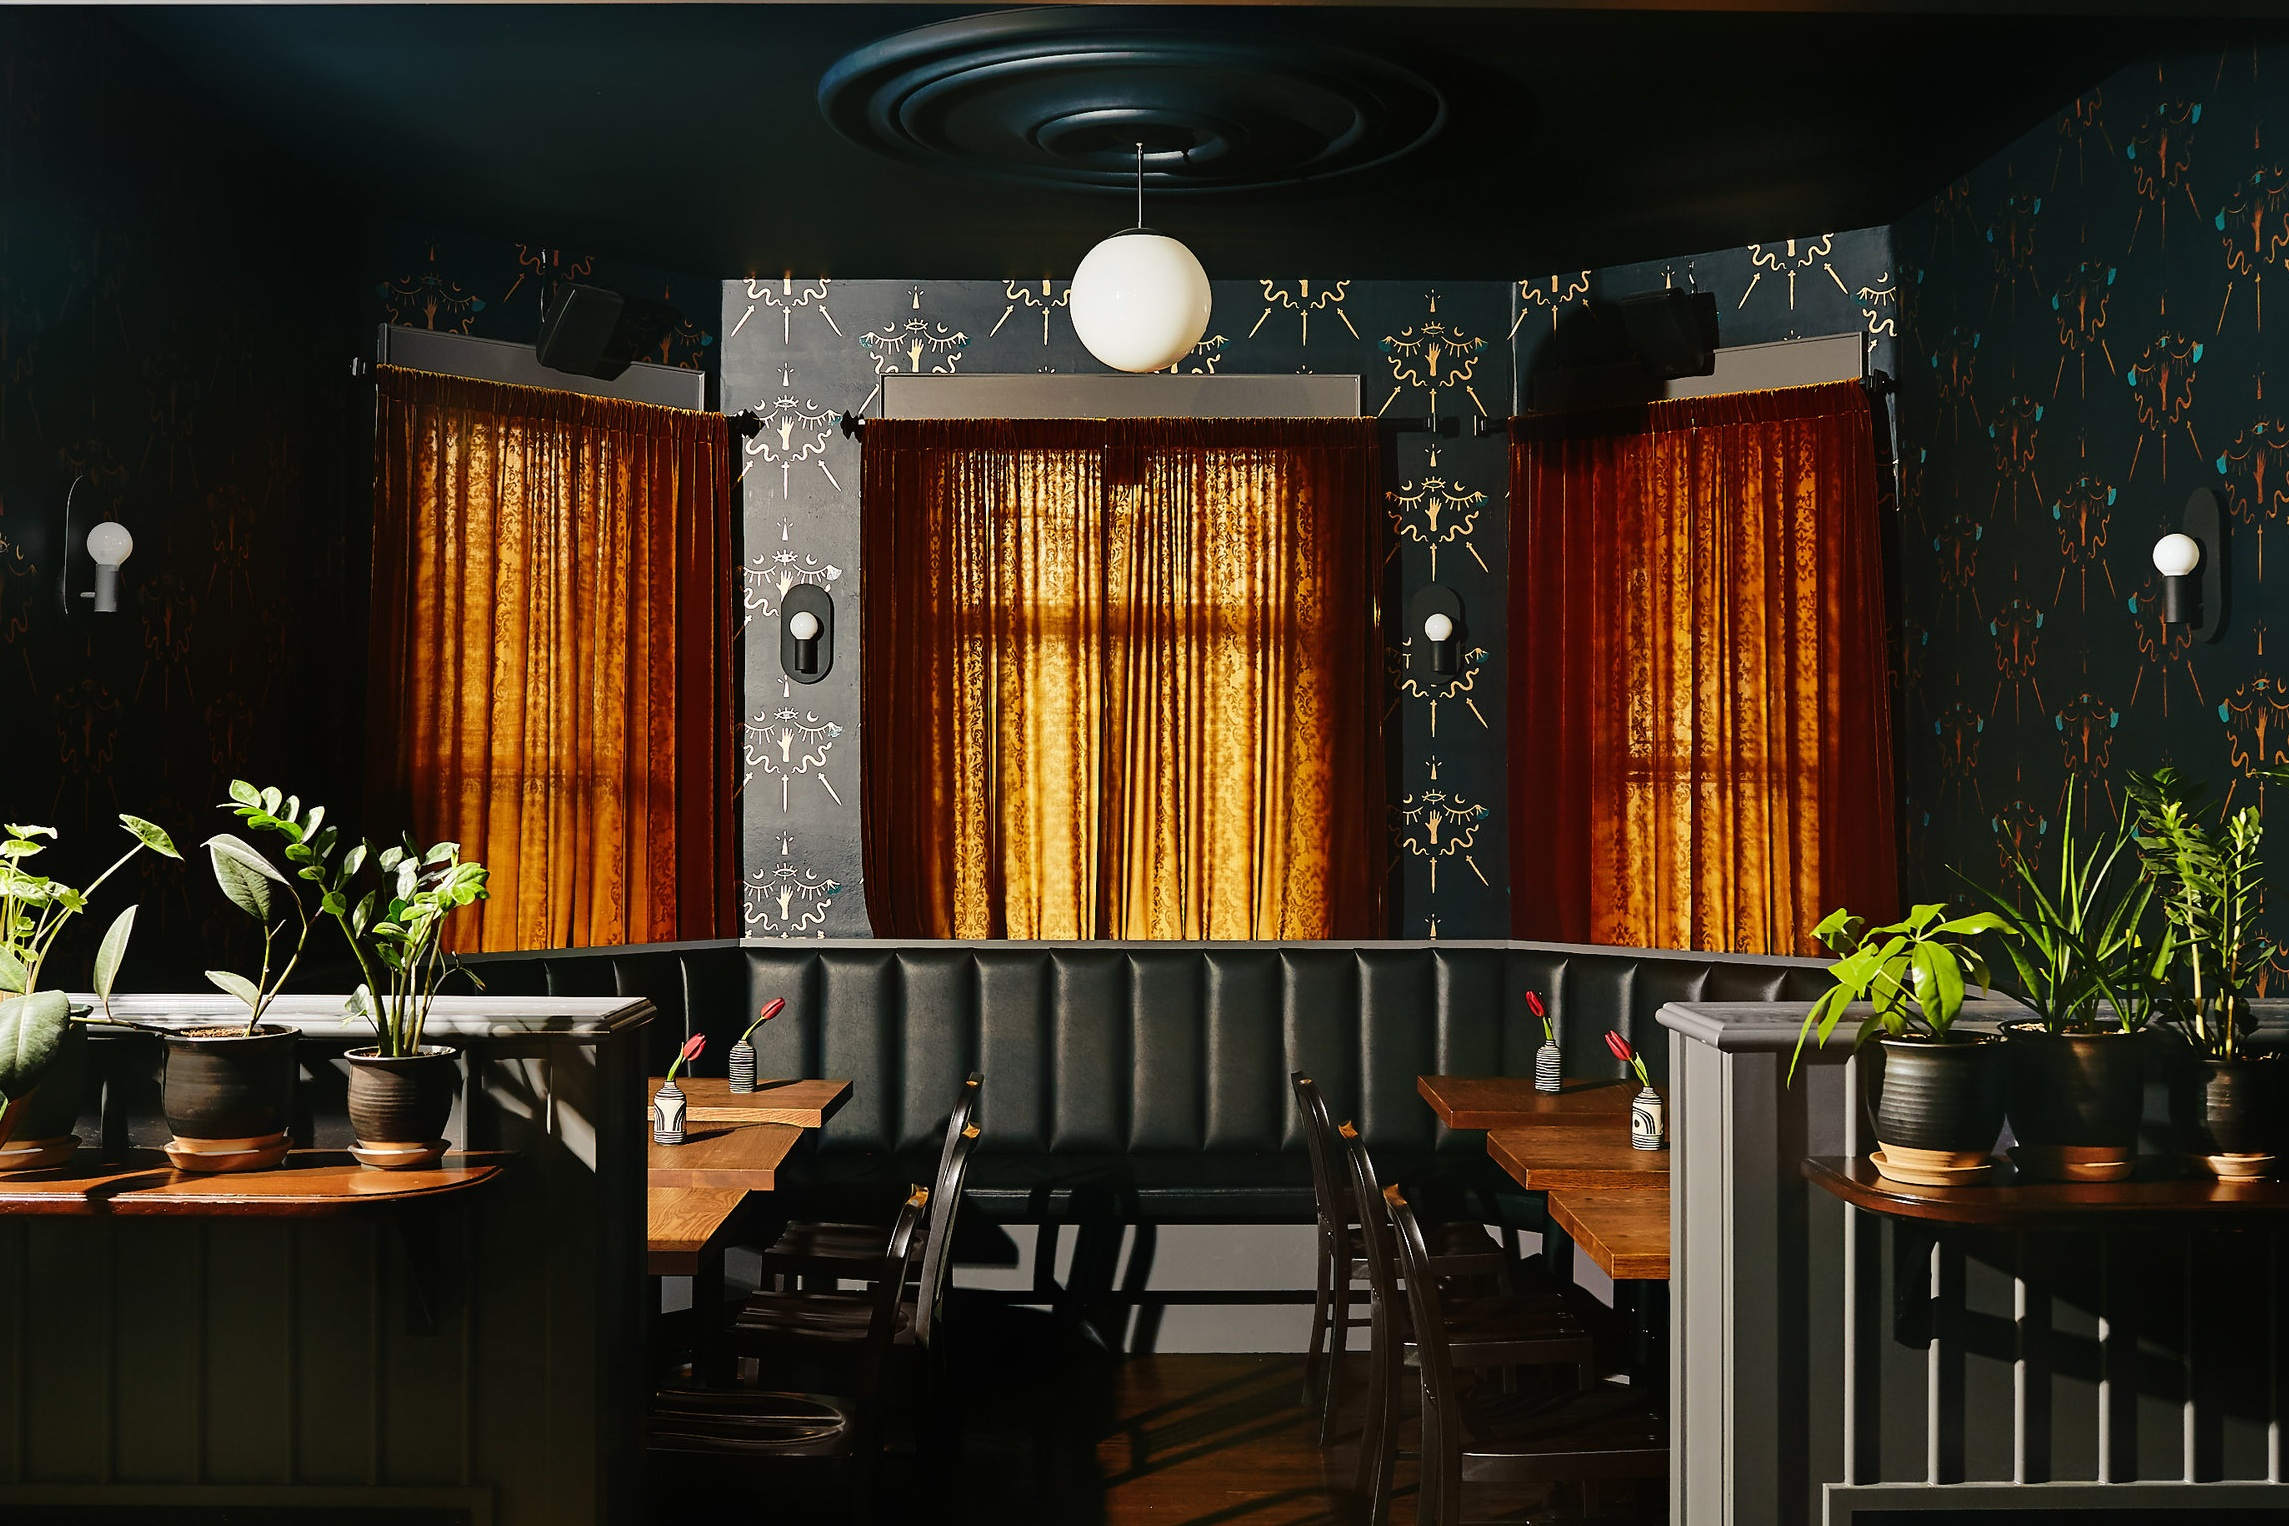 cocktail bar wallpaper.jpg